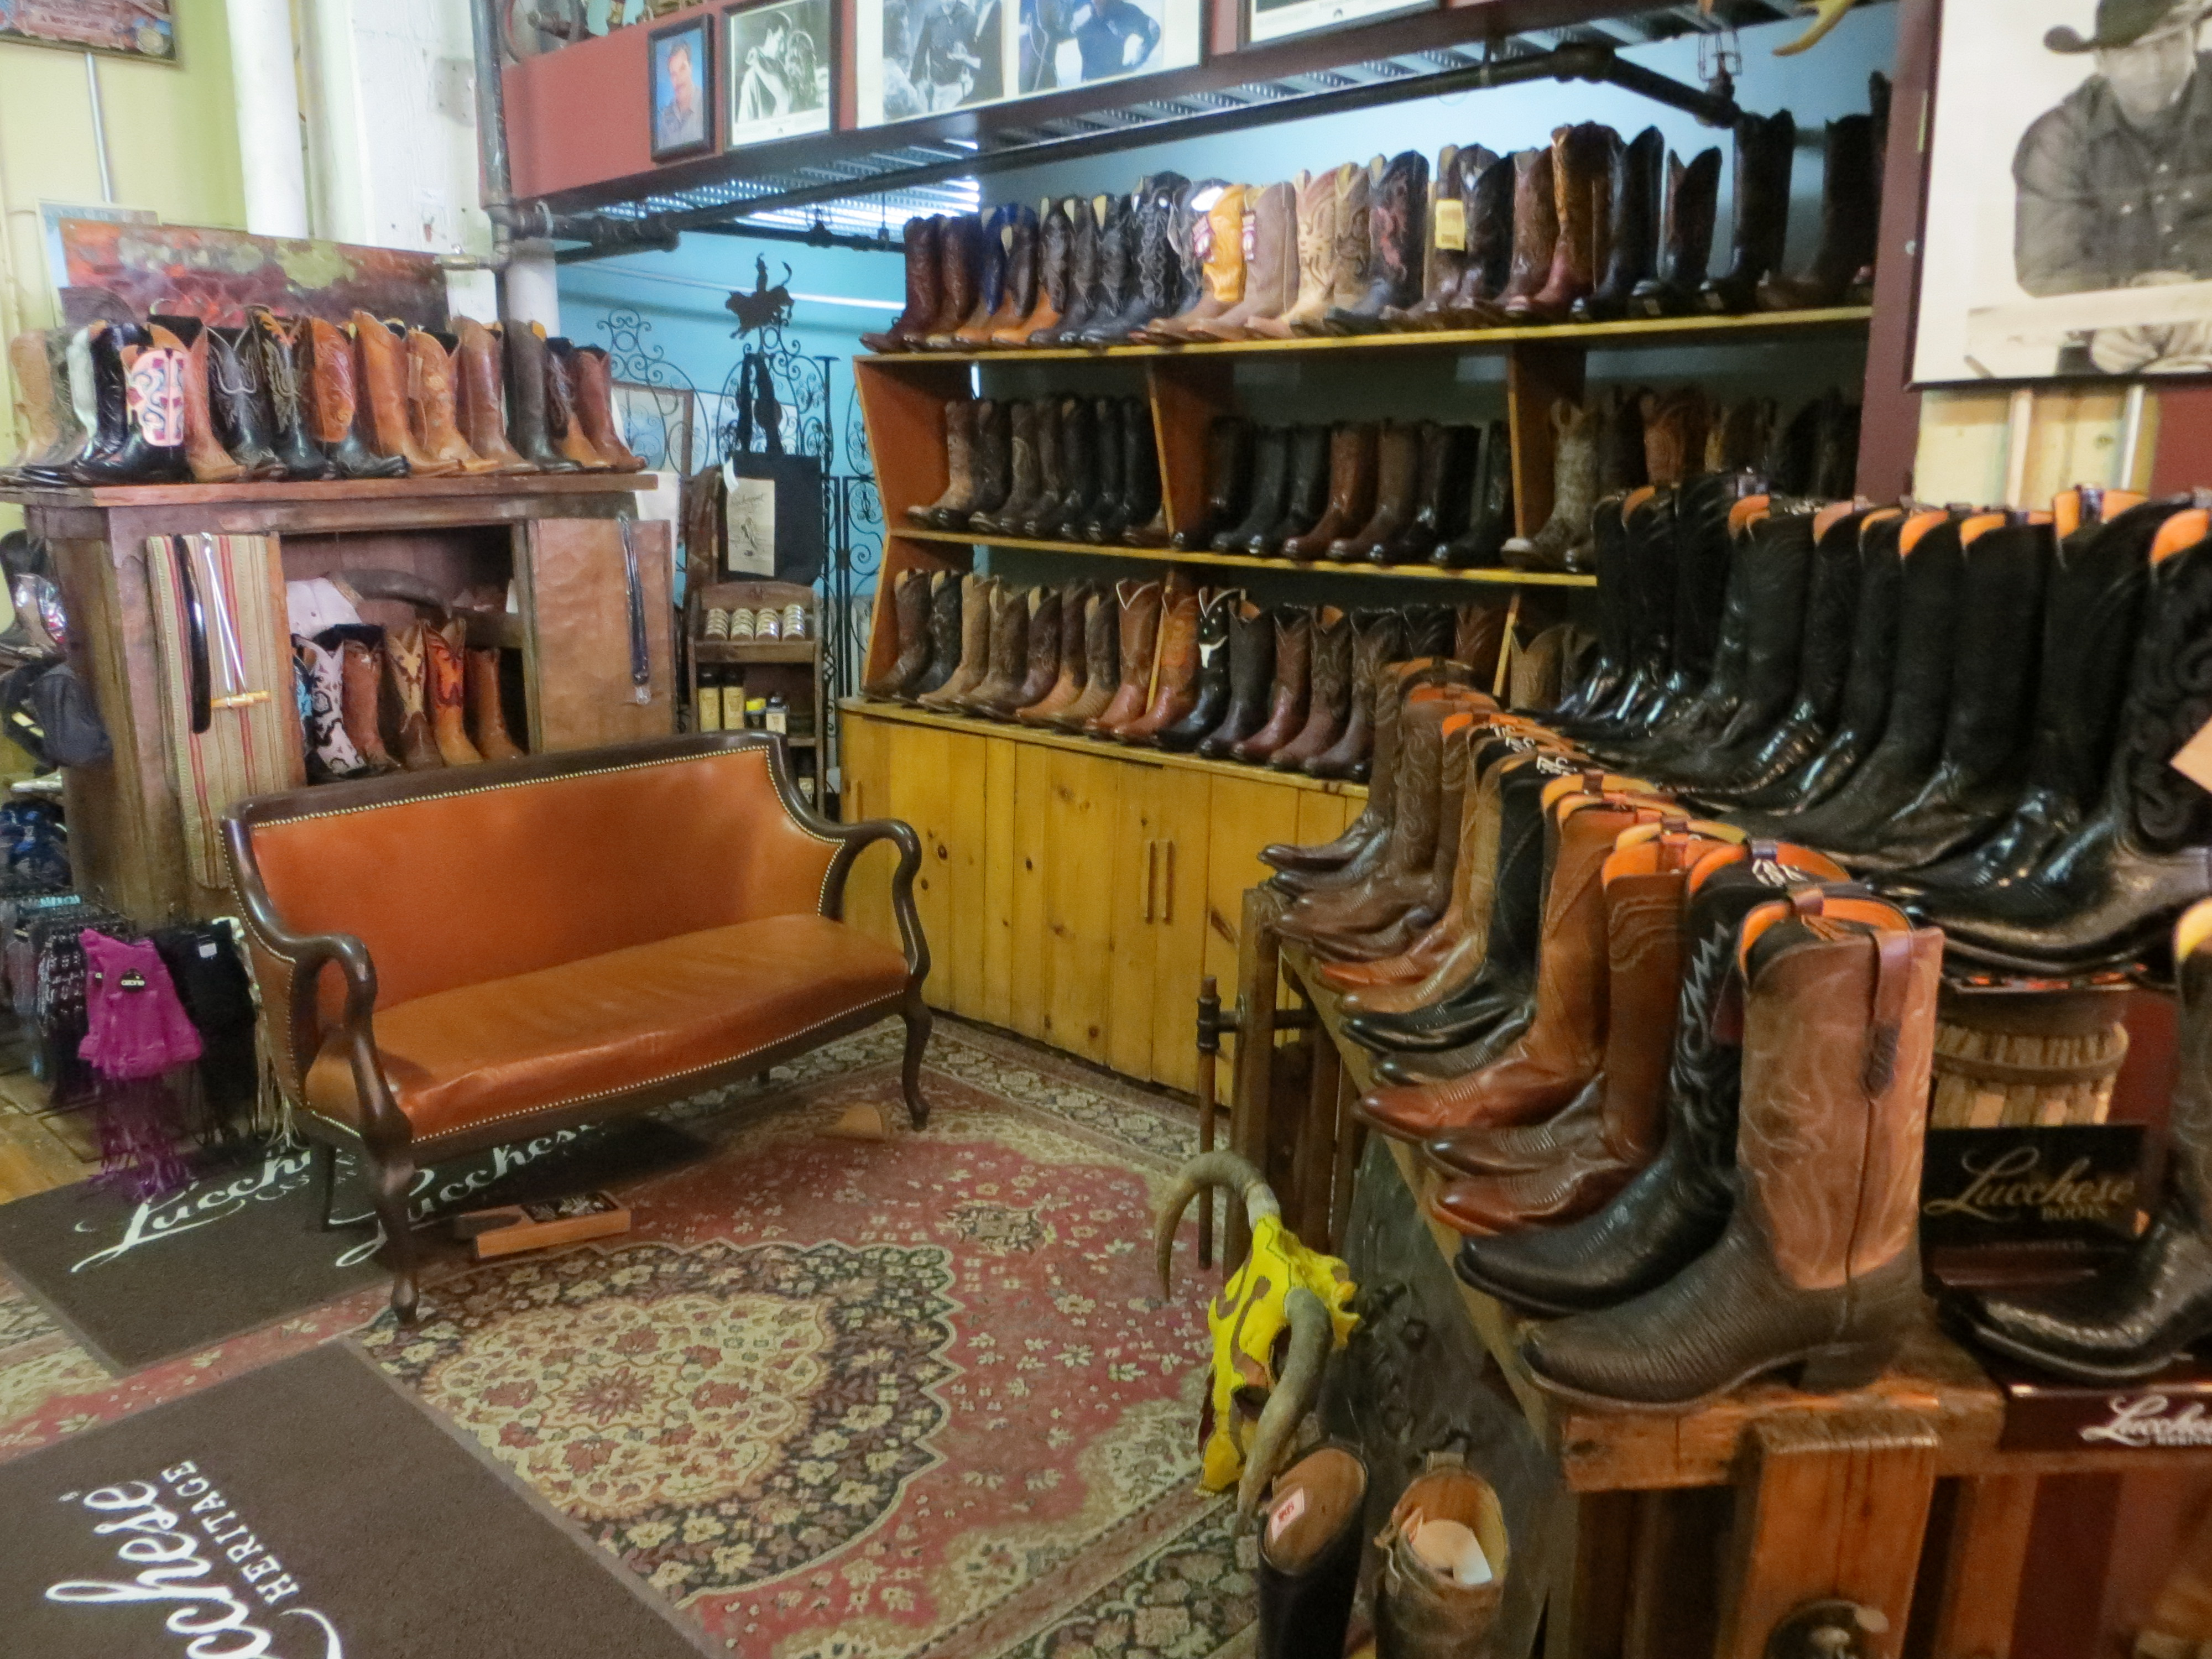 Where to buy cowboy boots in houston. Mens SHSU boots